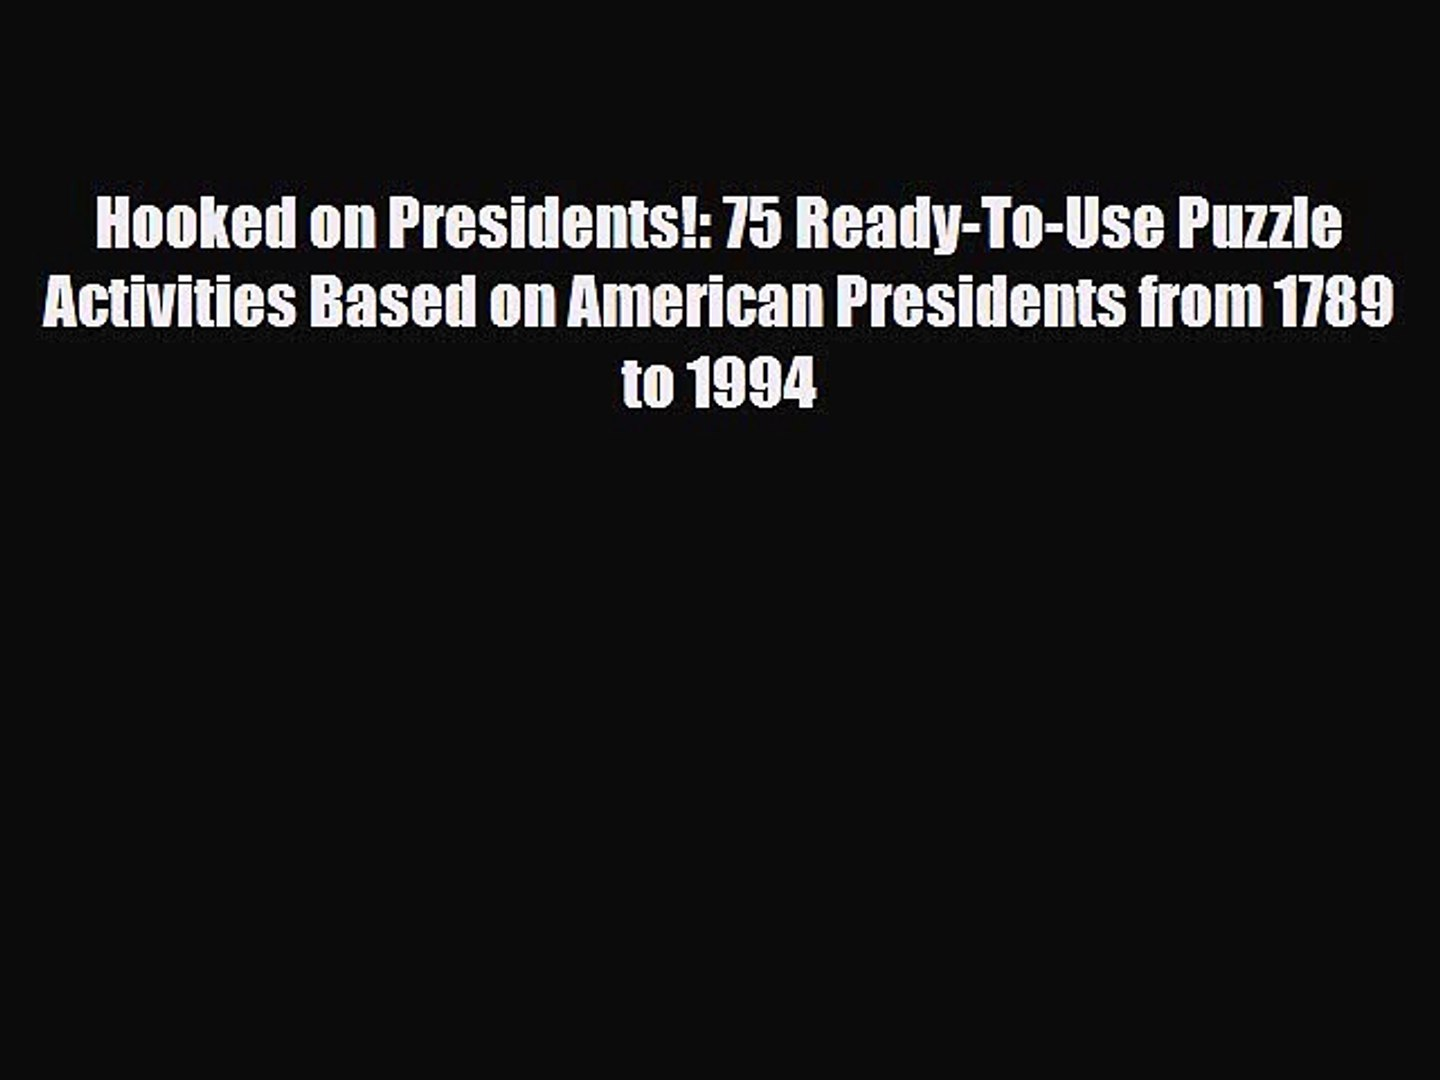 Read Hooked on Presidents!: 75 Ready-To-Use Puzzle Activities Based on American Presidents